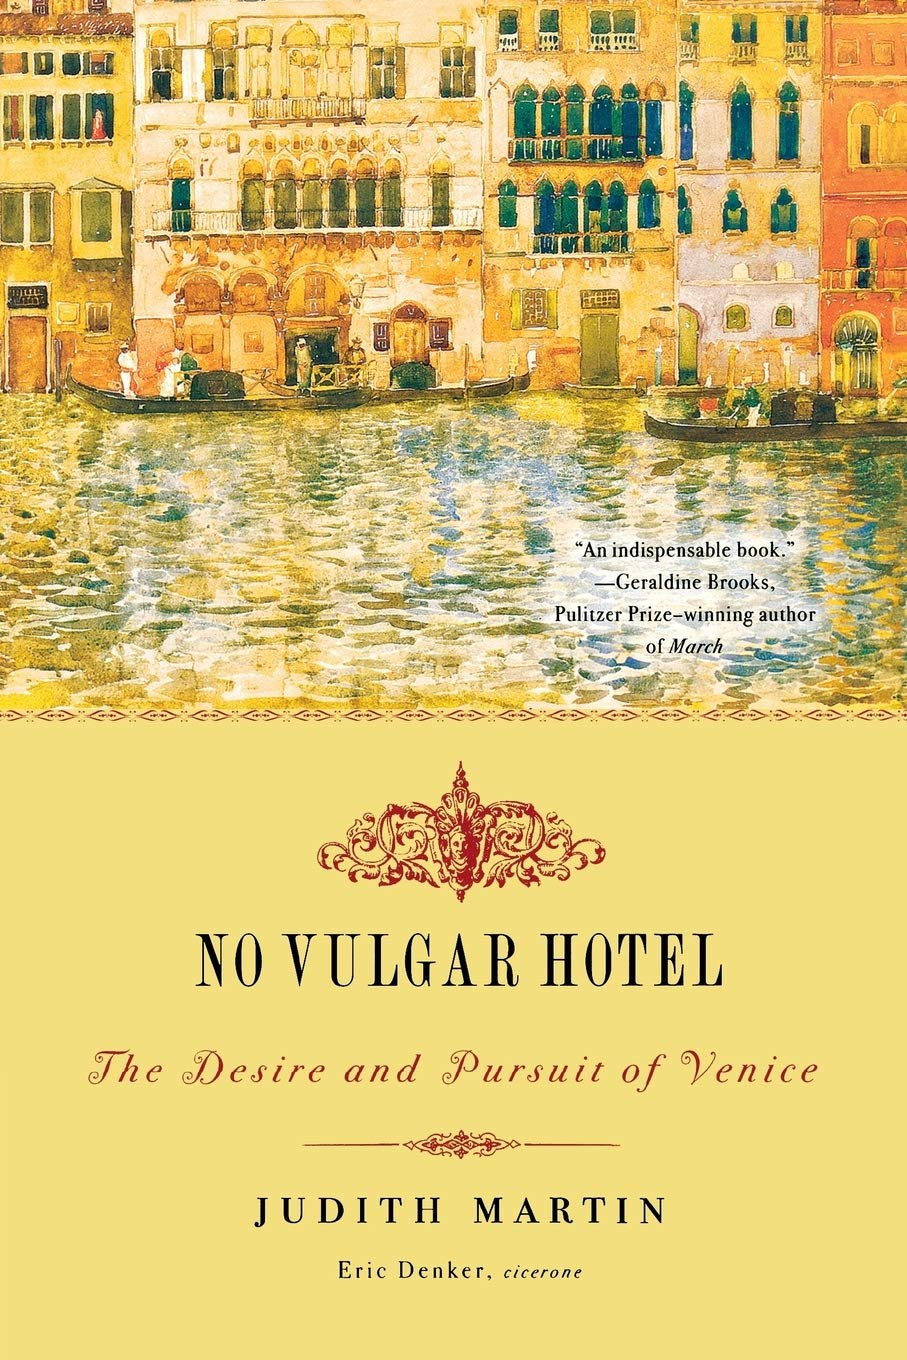 Image OfNo Vulgar Hotel: The Desire And Pursuit Of Venice Lingua Inglese